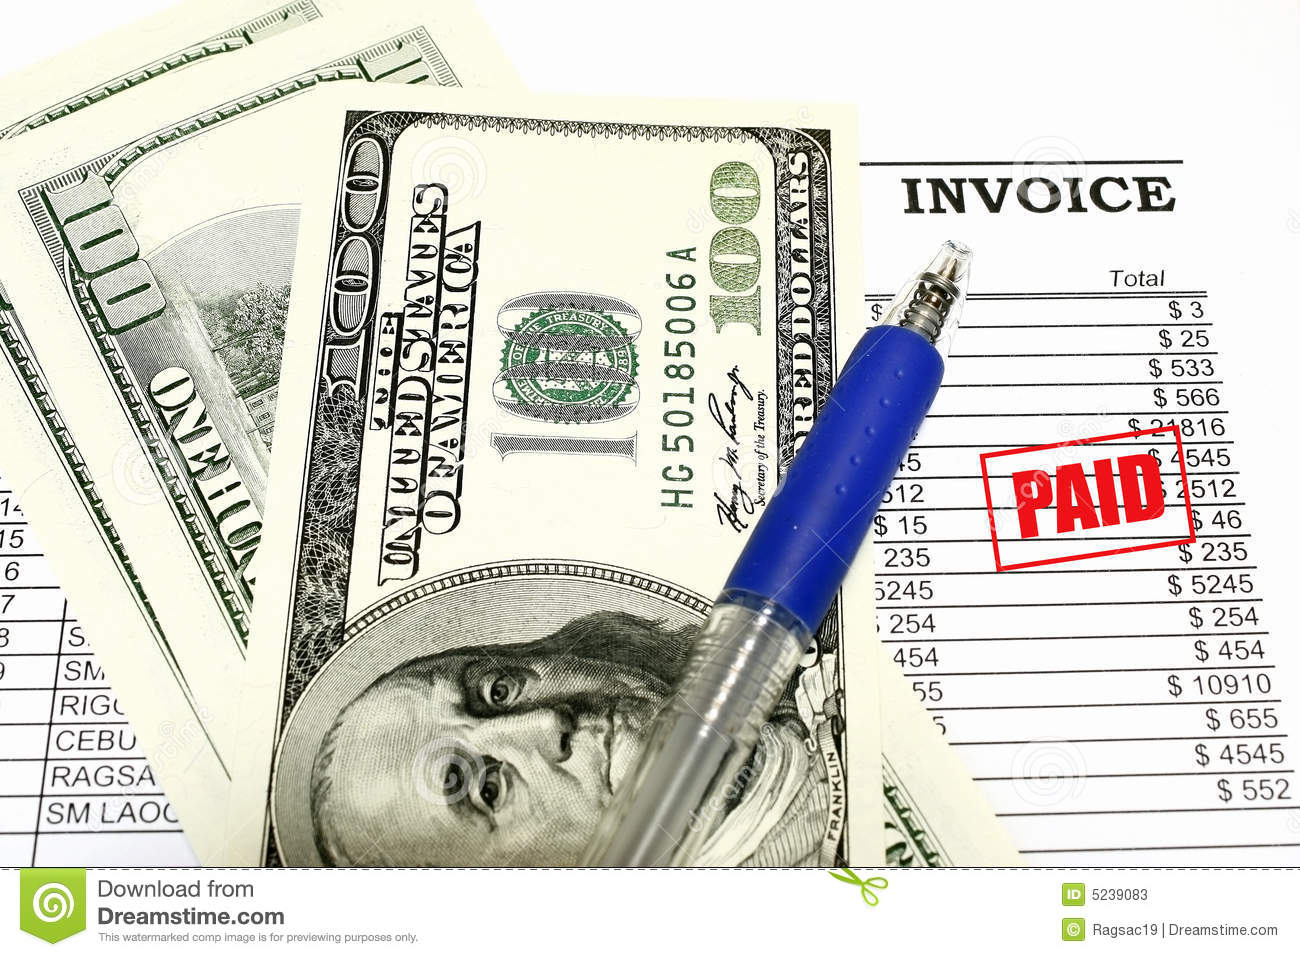 Invoice is Paid concept dollar invoice receipt and paid stamp.